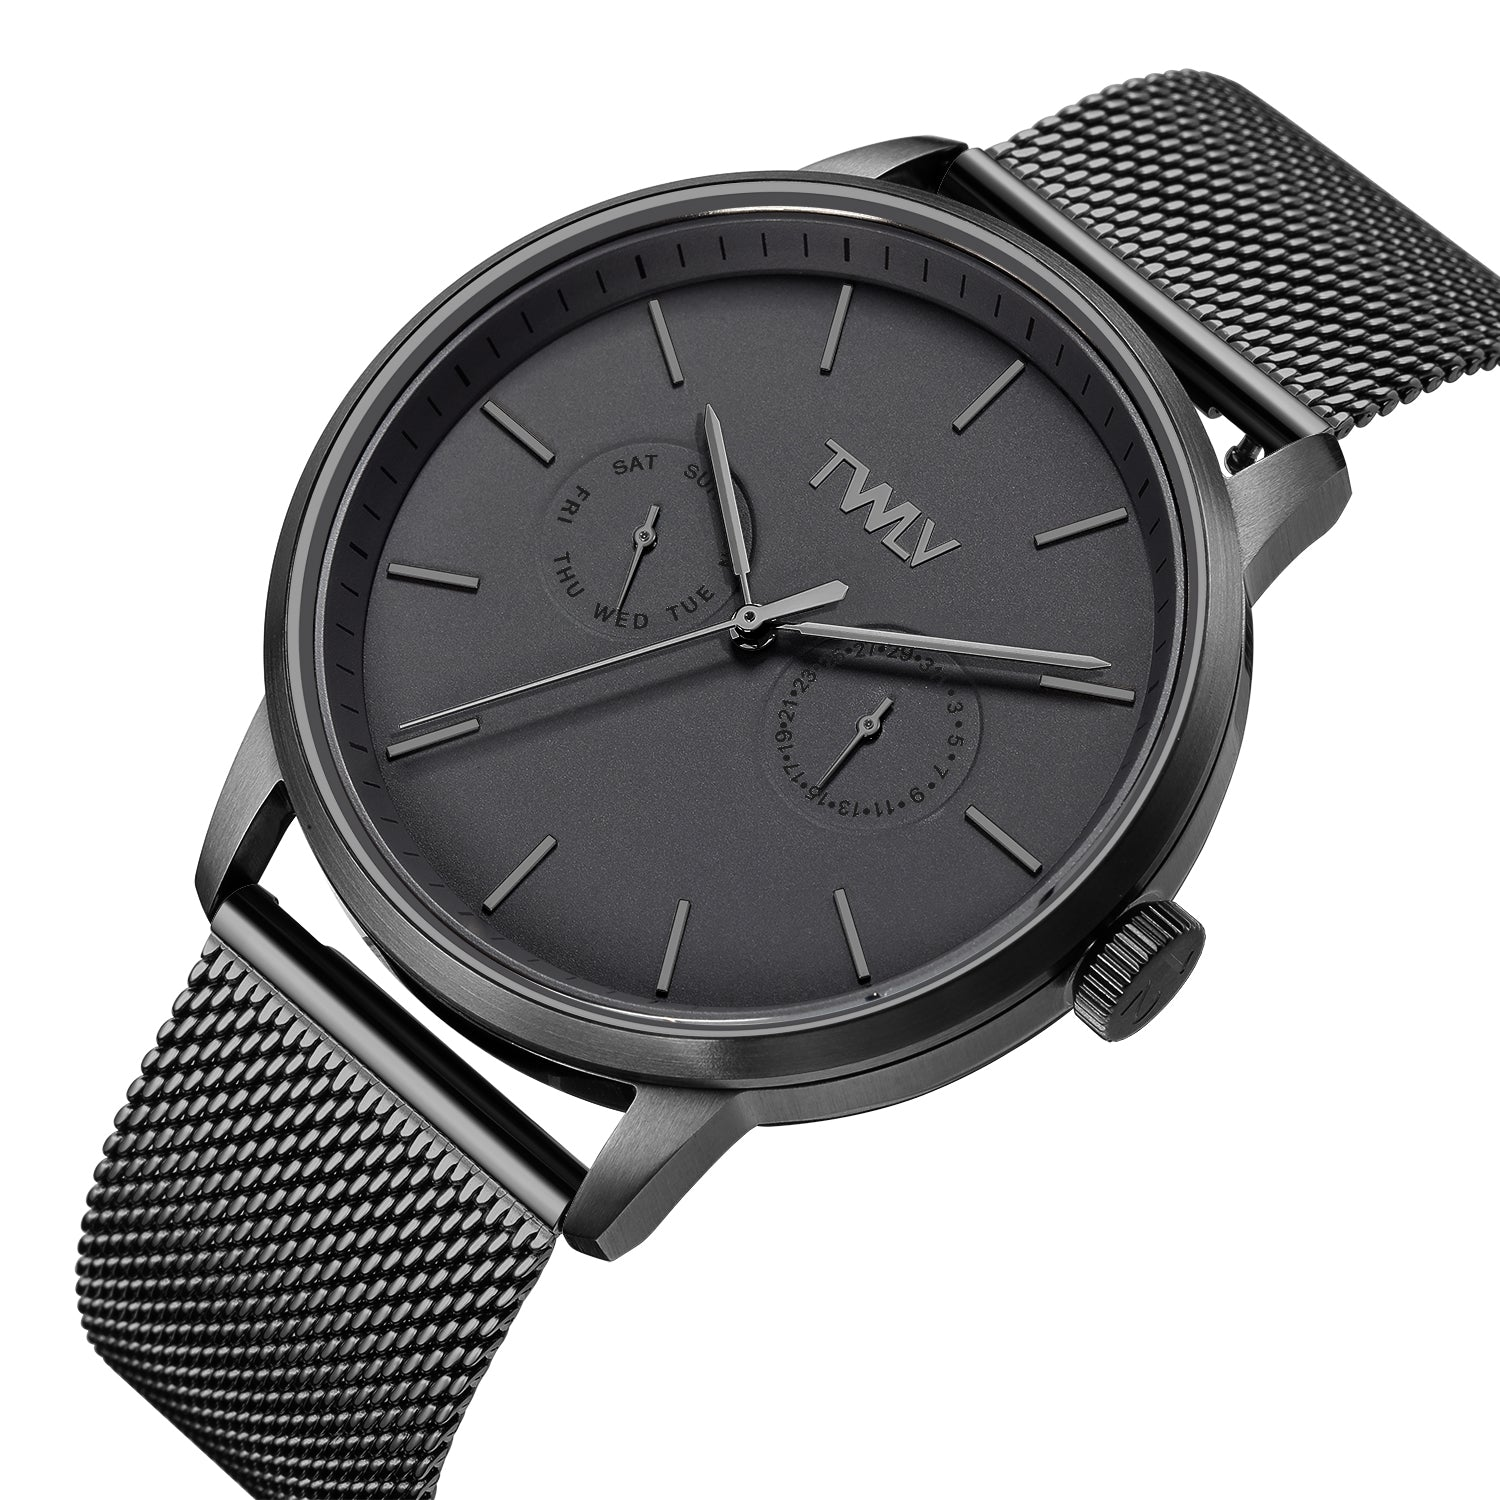 TW4407 Mr. King Gun Metal Mesh Black Watch